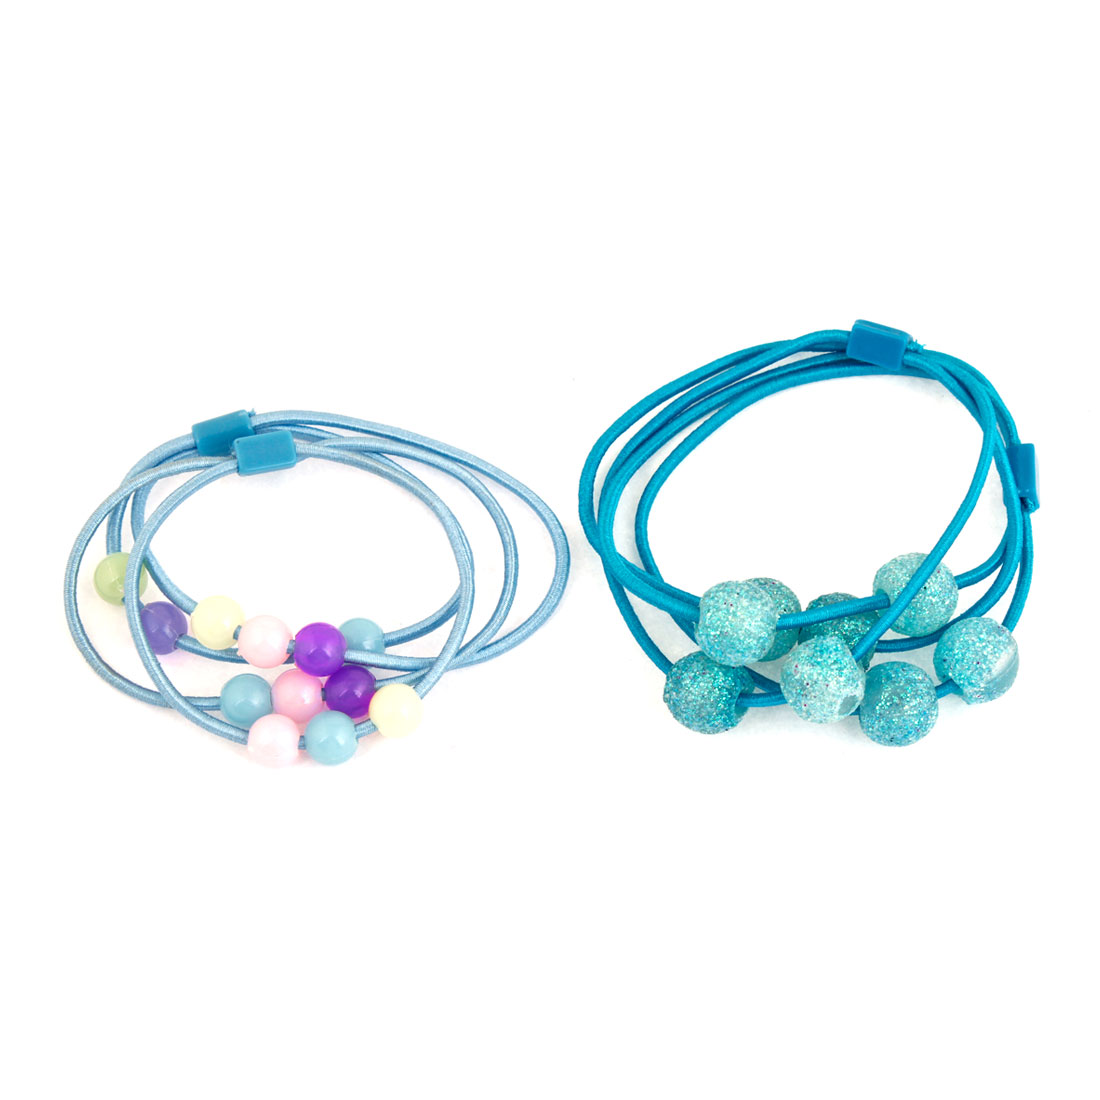 2 Pairs Beads Accent Cyan Blue Stretchy Hair Tie Ponytail Holder for Child